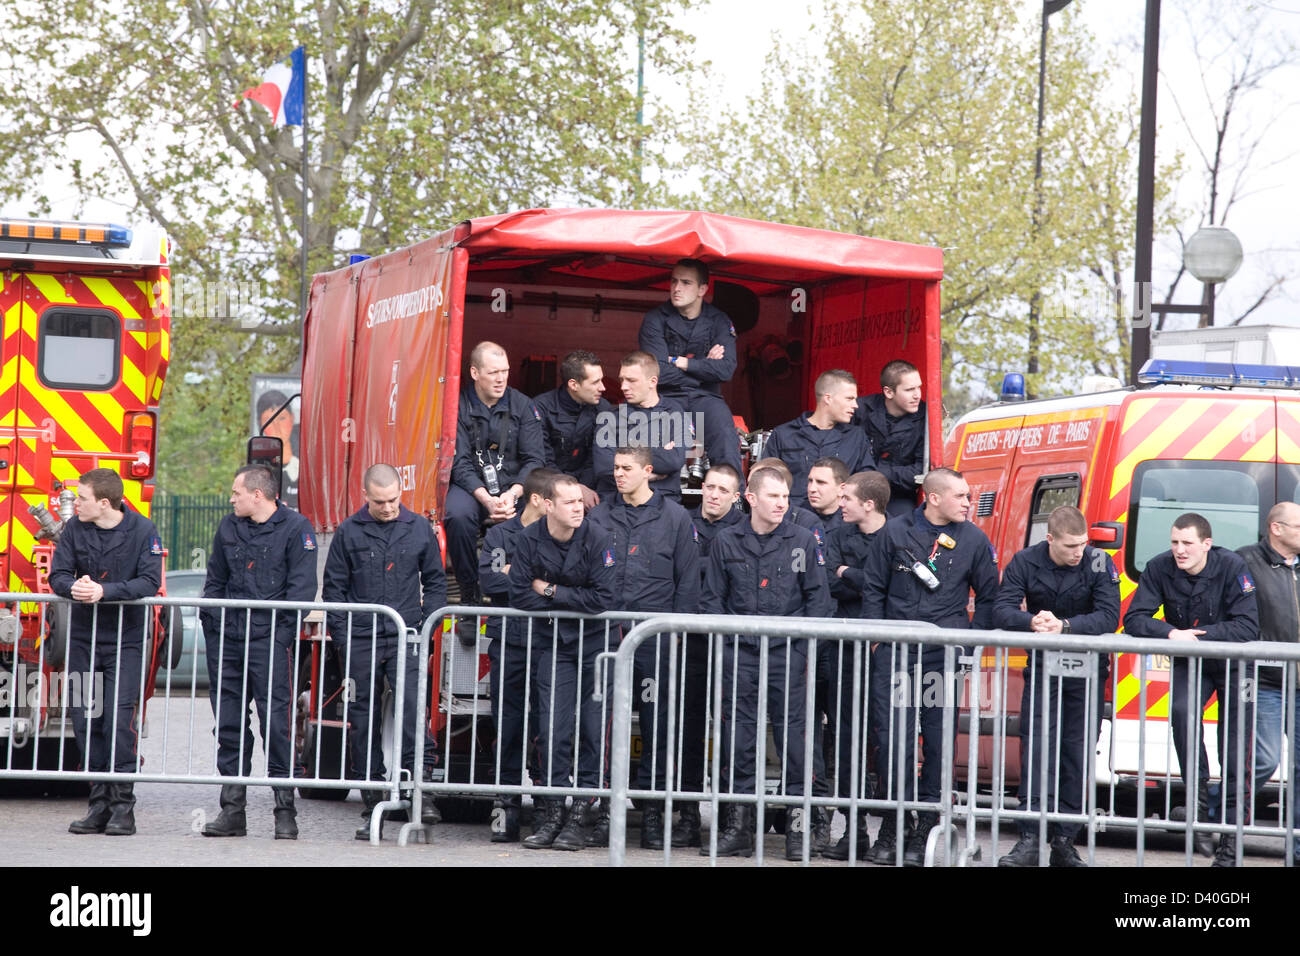 Group Of Firefighters On The Street, Paris, France - Stock Image